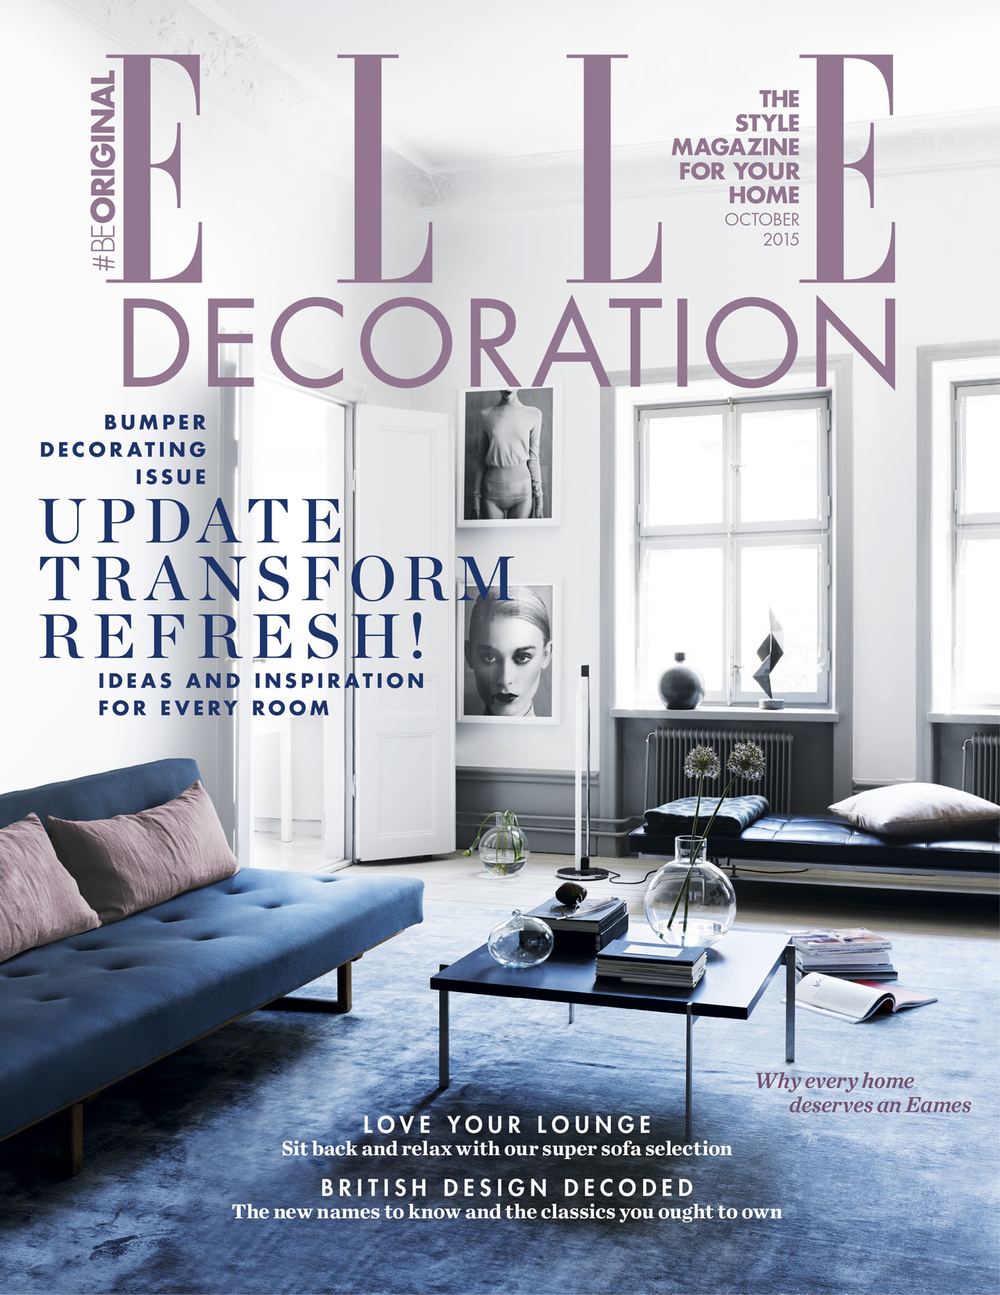 Elle Decoration Award Winner 2016; Best Lighting Design